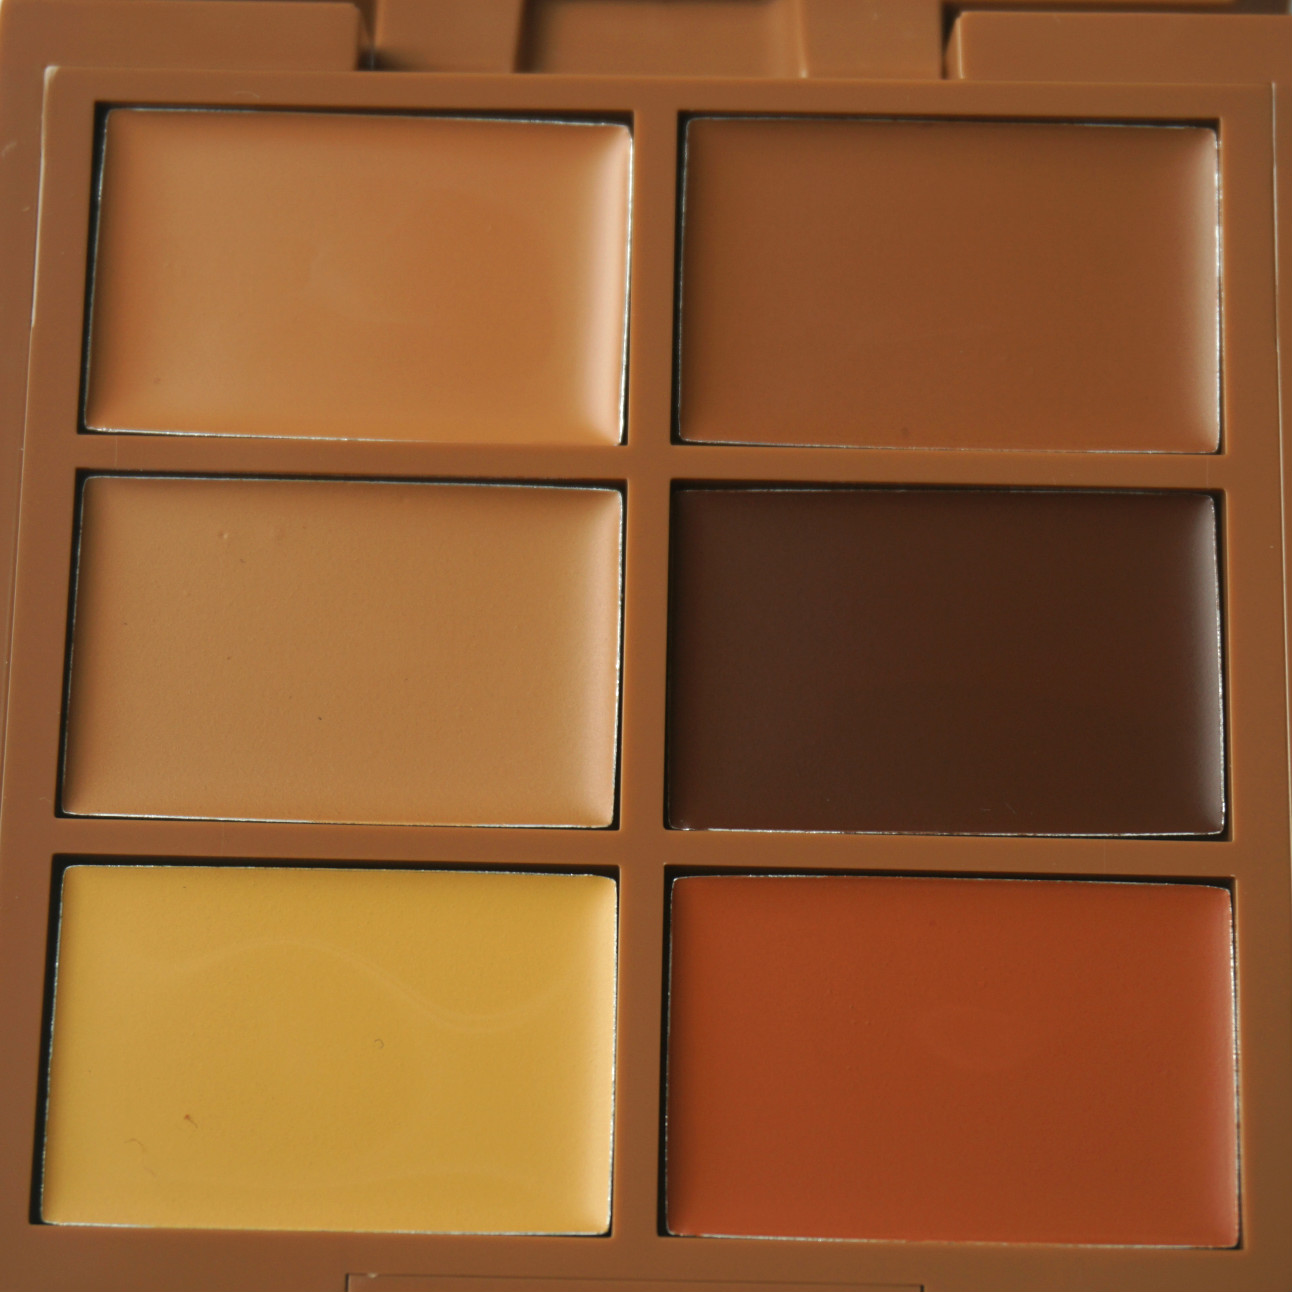 Review Nyx Conceal Correct Contour Palette In Dark